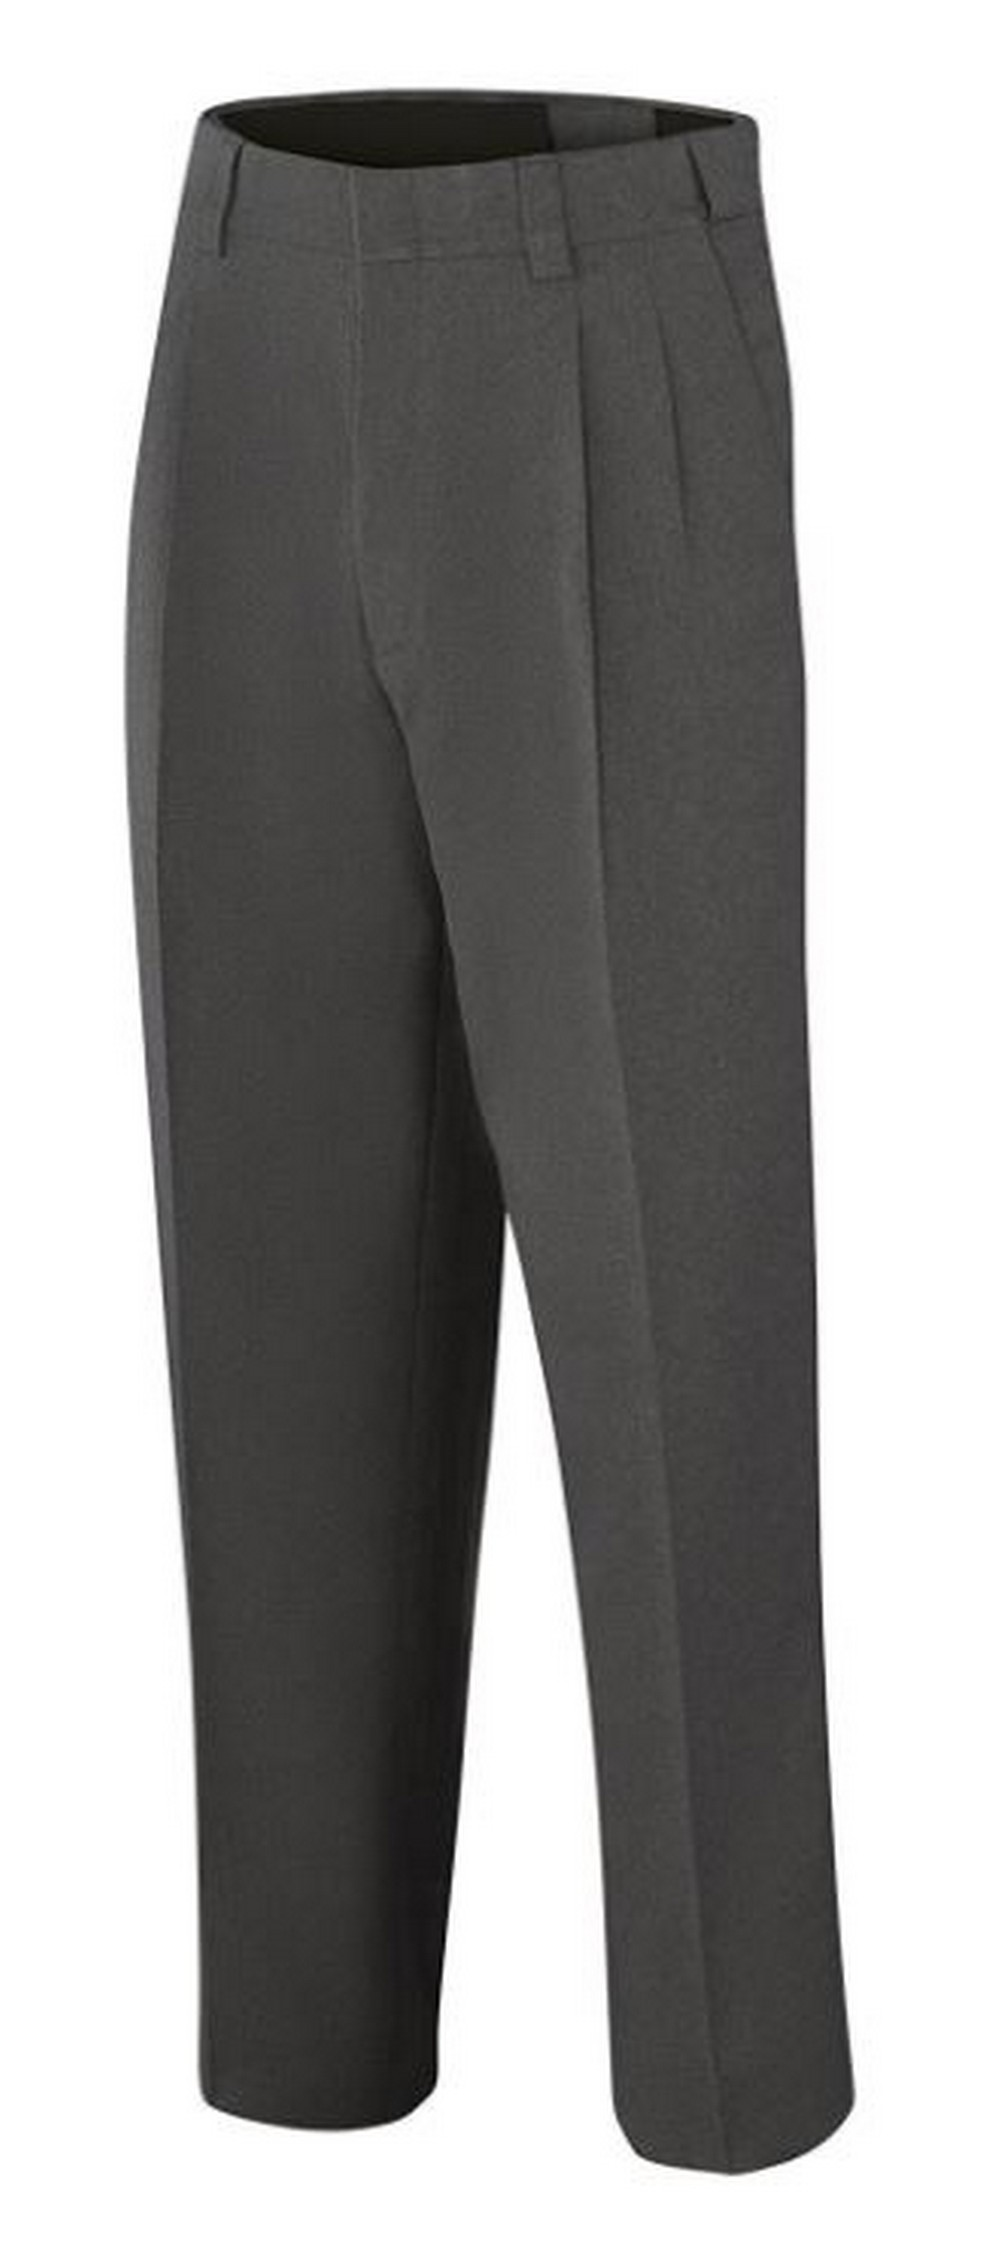 Smitty Apparel Umpire Combo Pants Choose Charcoal or Heather Grey Adams ADMBB375 by Schutt